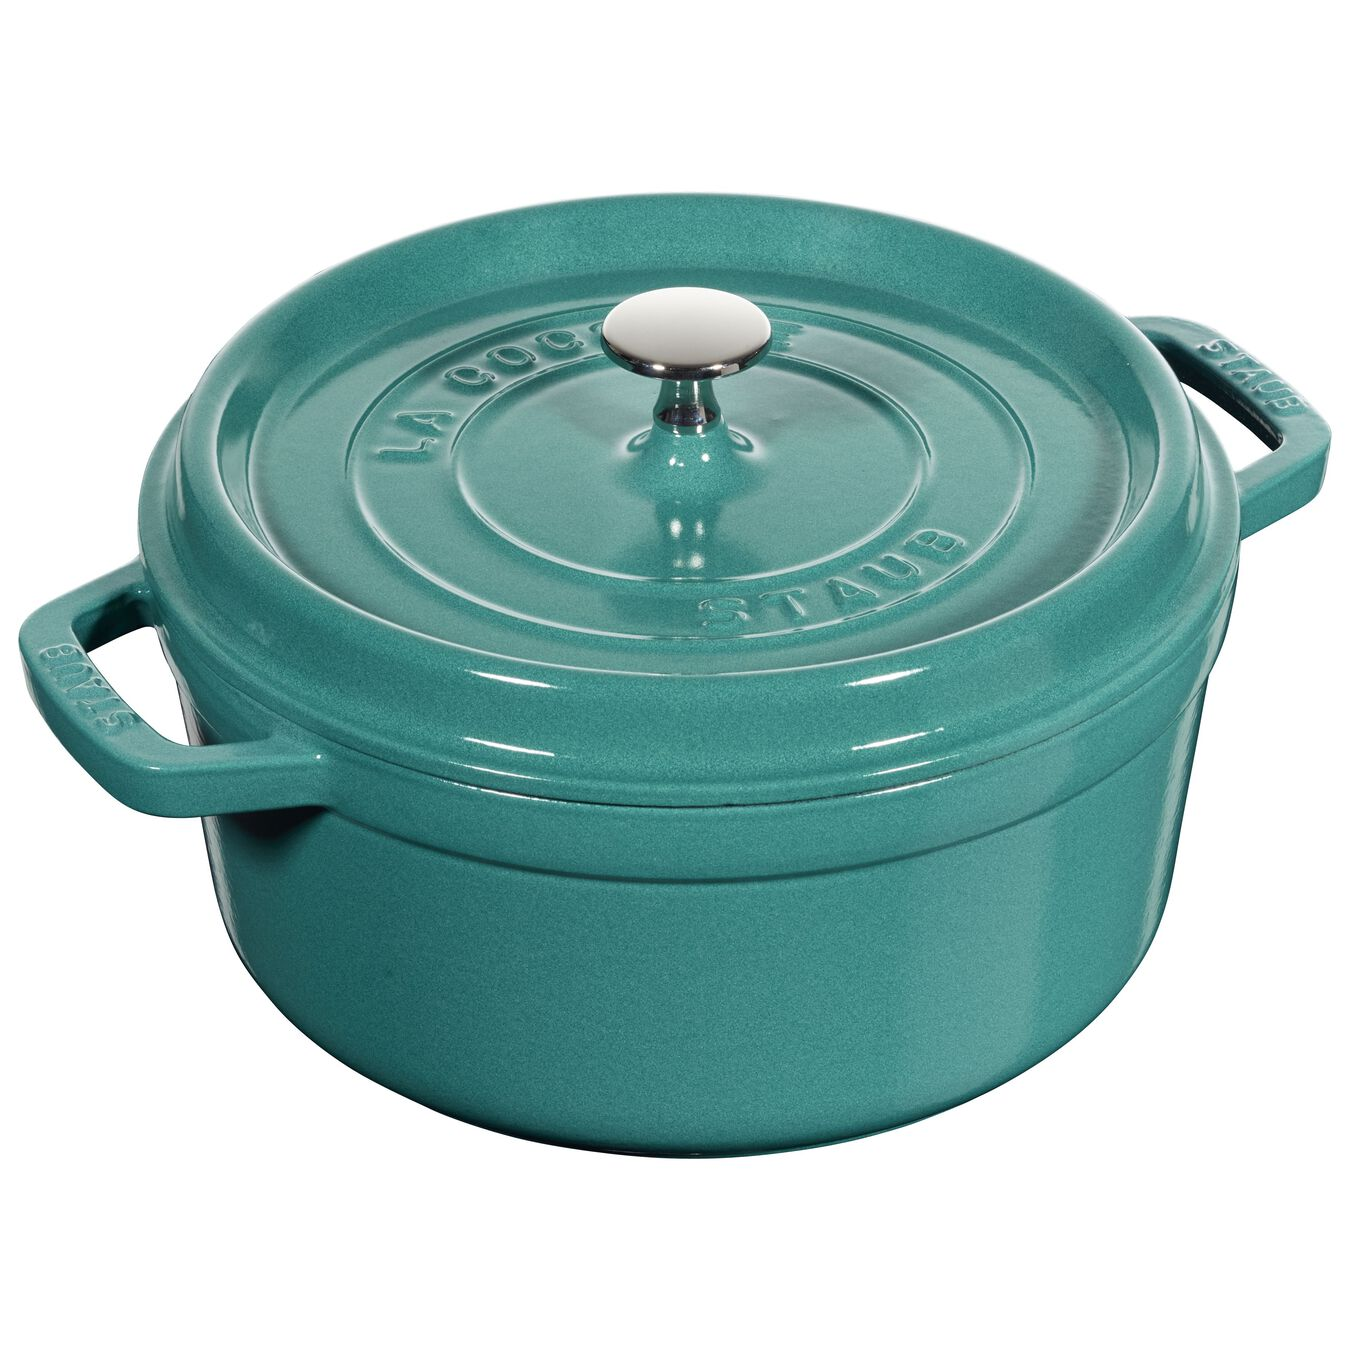 4-qt Round Cocotte - Turquoise,,large 1